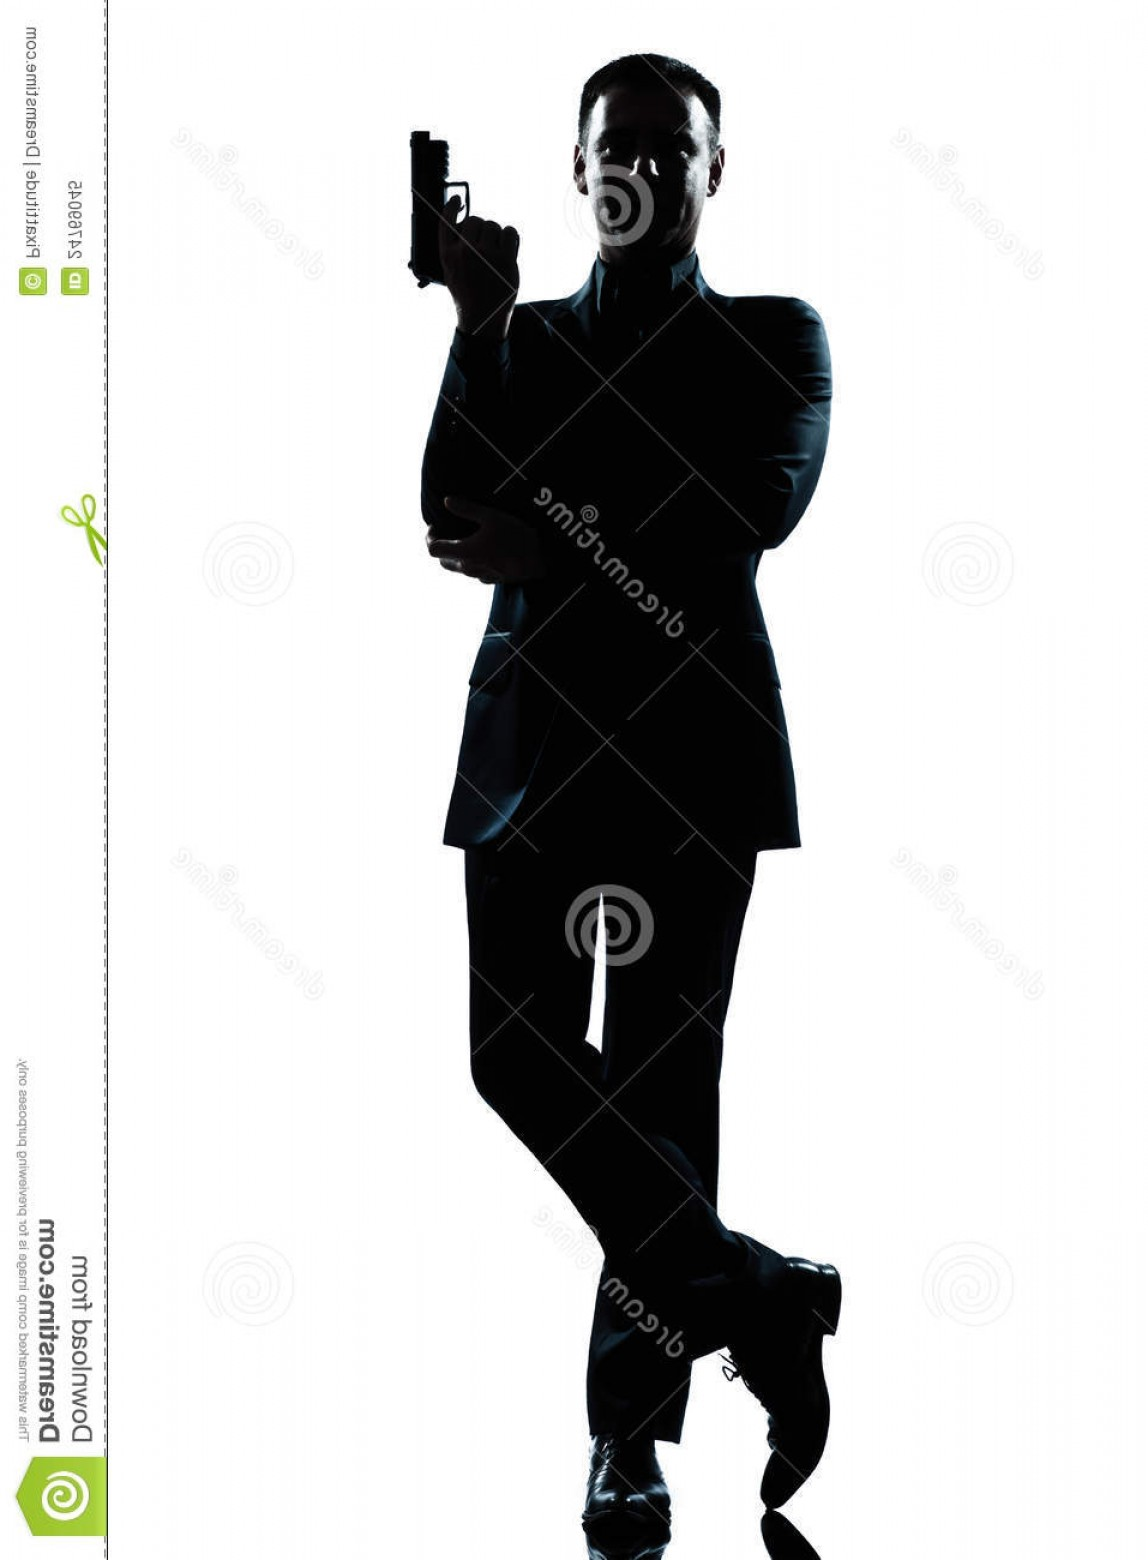 James Bond Silhouette Vector: Royalty Free Stock Photo Silhouette Man Secret Agent James Bond Posture Image